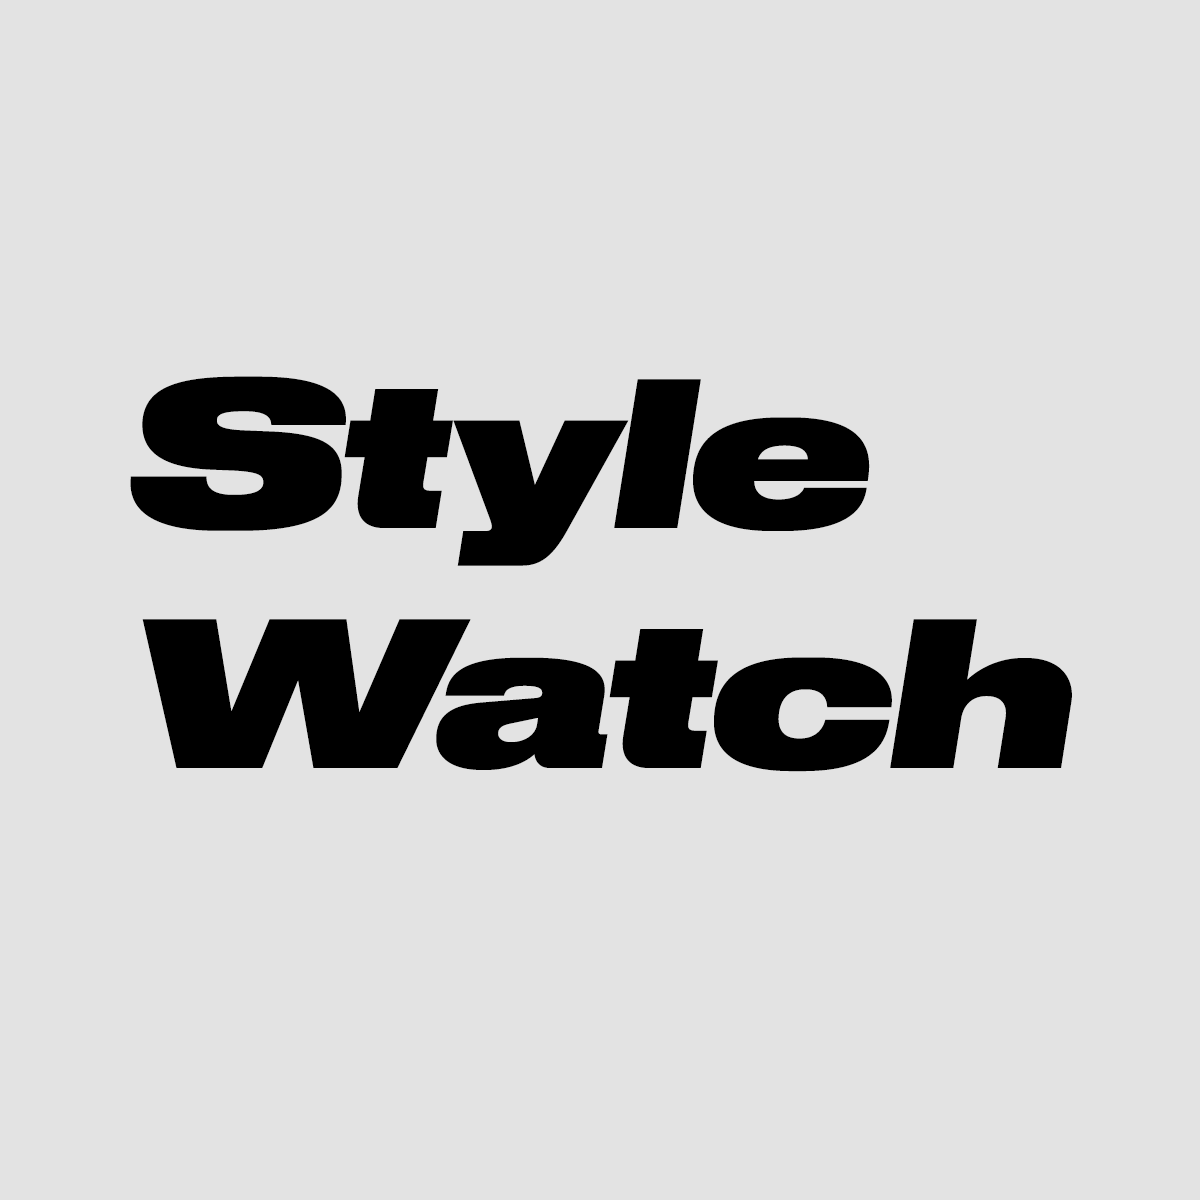 Logo of STYLEWATCH